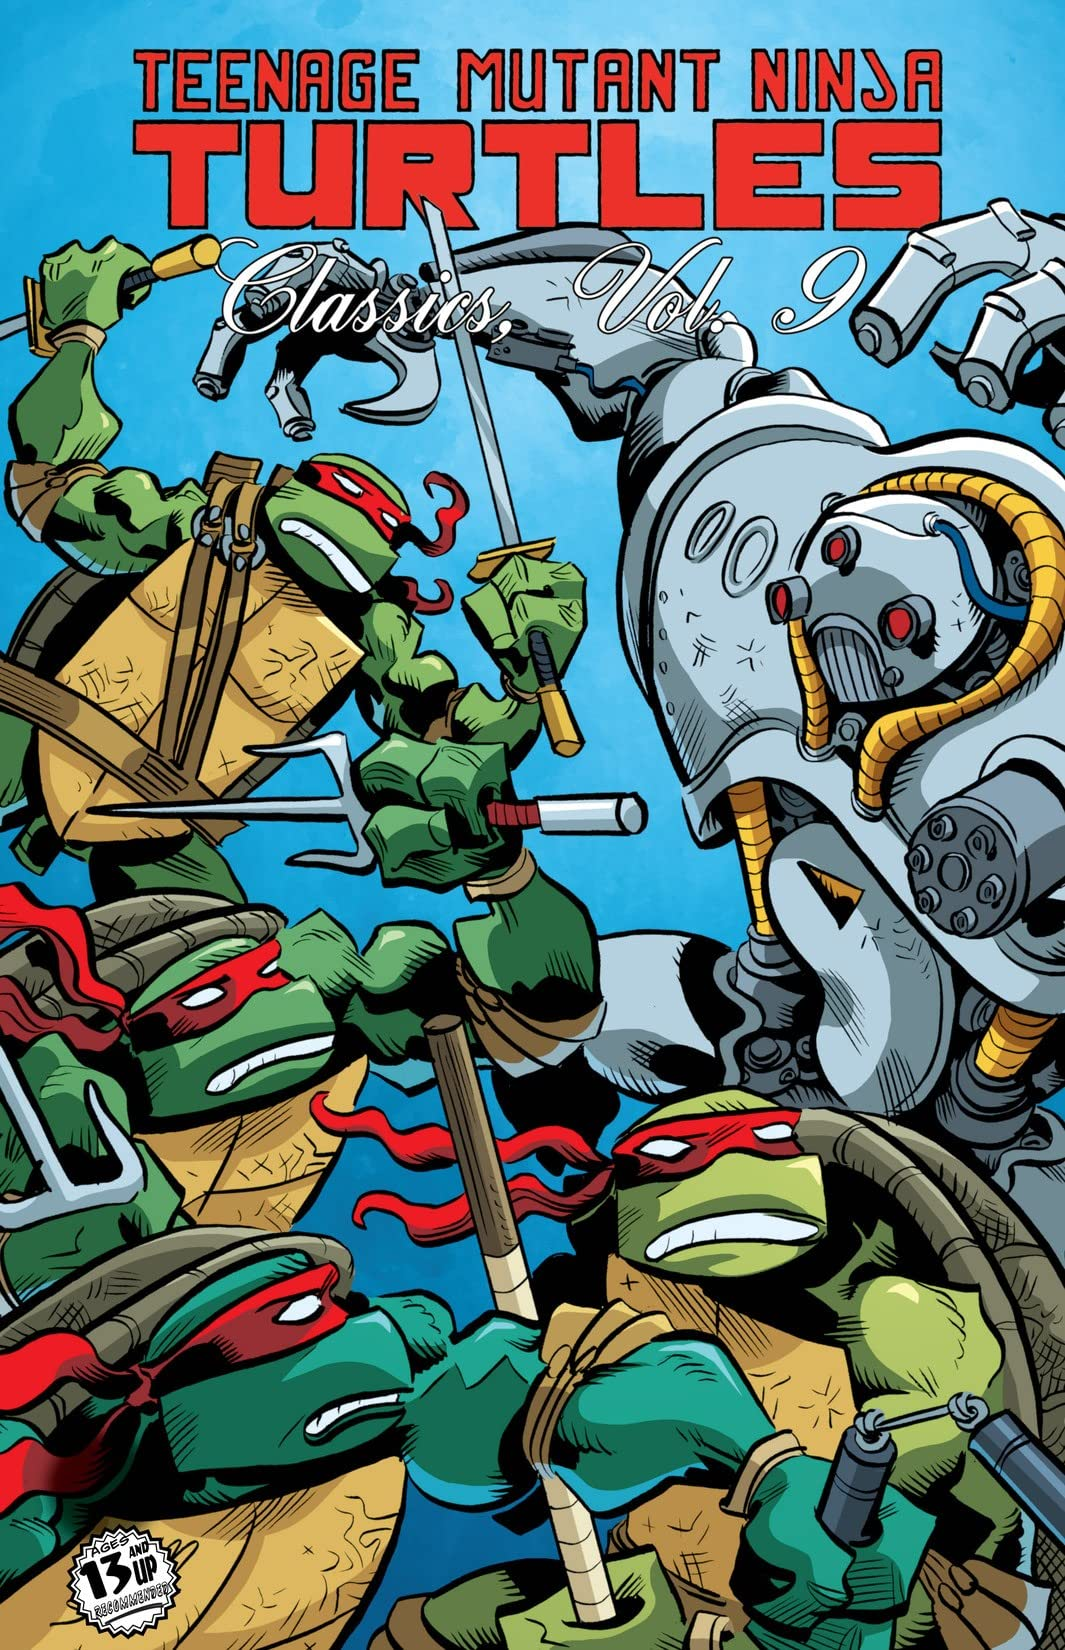 Teenage Mutant Ninja Turtles: Classics Vol. 9